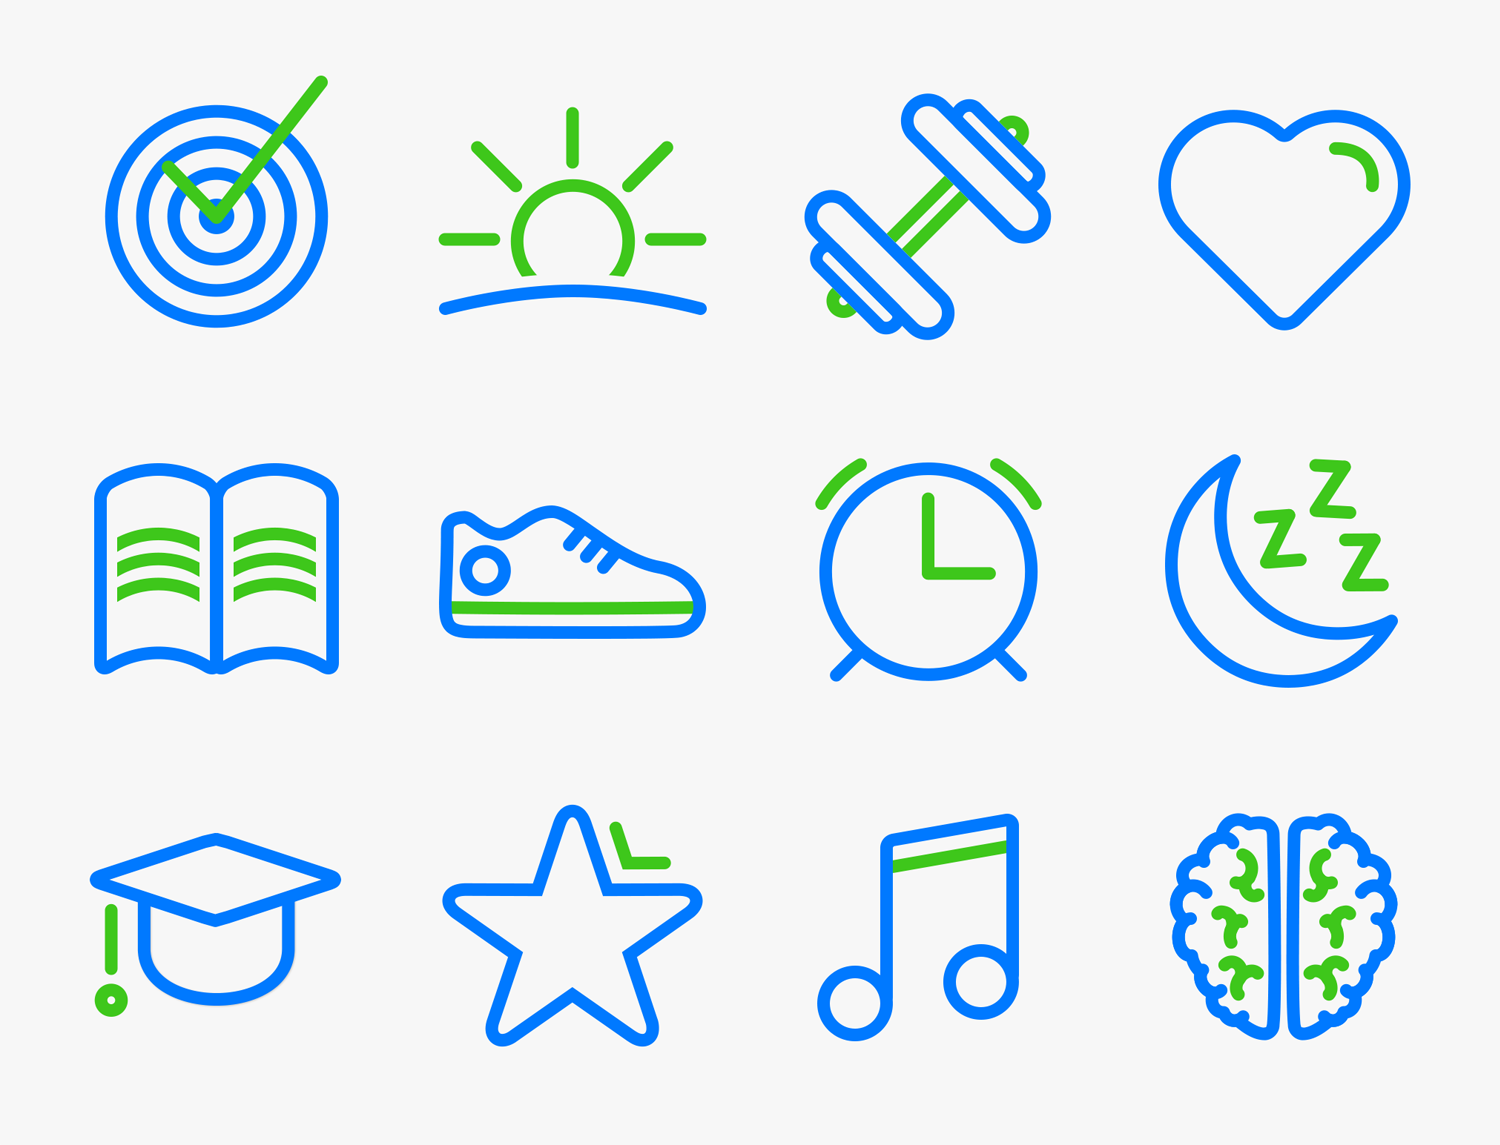 Icons for any habits you can imagine